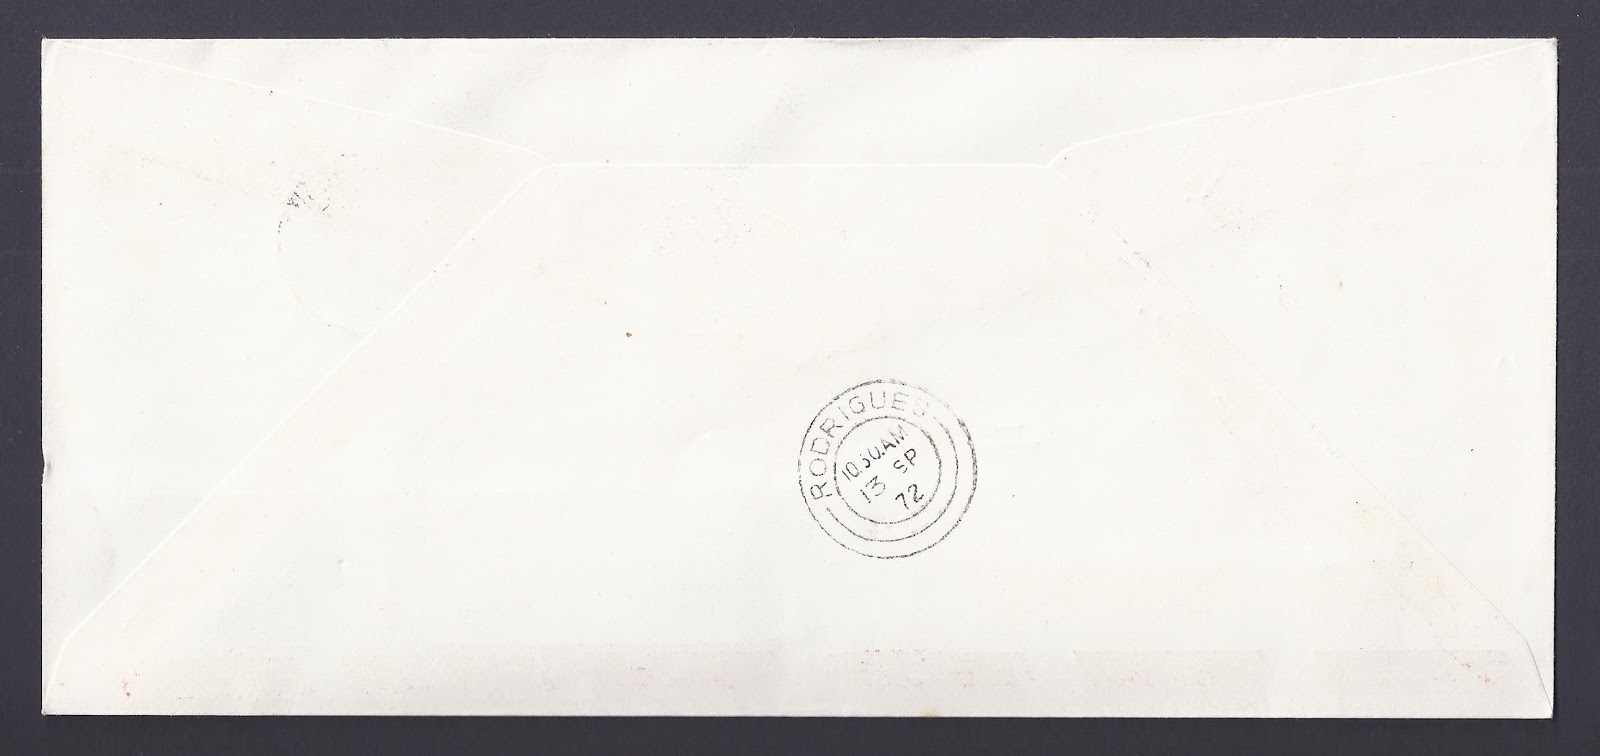 first flight cover handstamped upon arrival in rodrigues on 13 september 1972 itself